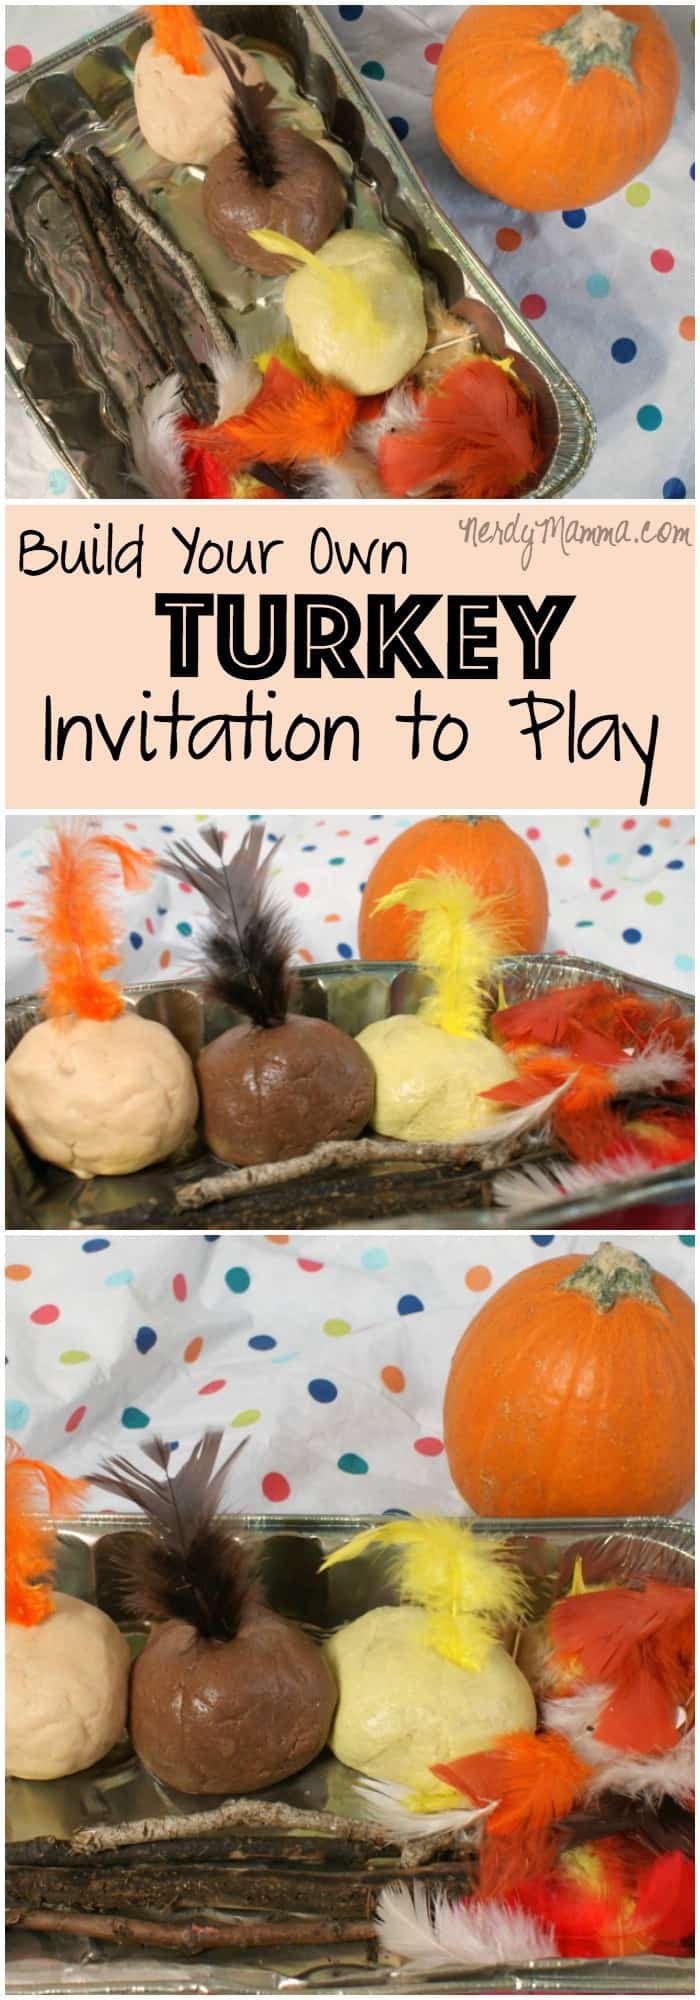 This Thanksgiving Turkey Themed Invitation to Play is such a cute idea. I think I'll have to do this for the kids to occupy them while the turkey is cooking! LOL!